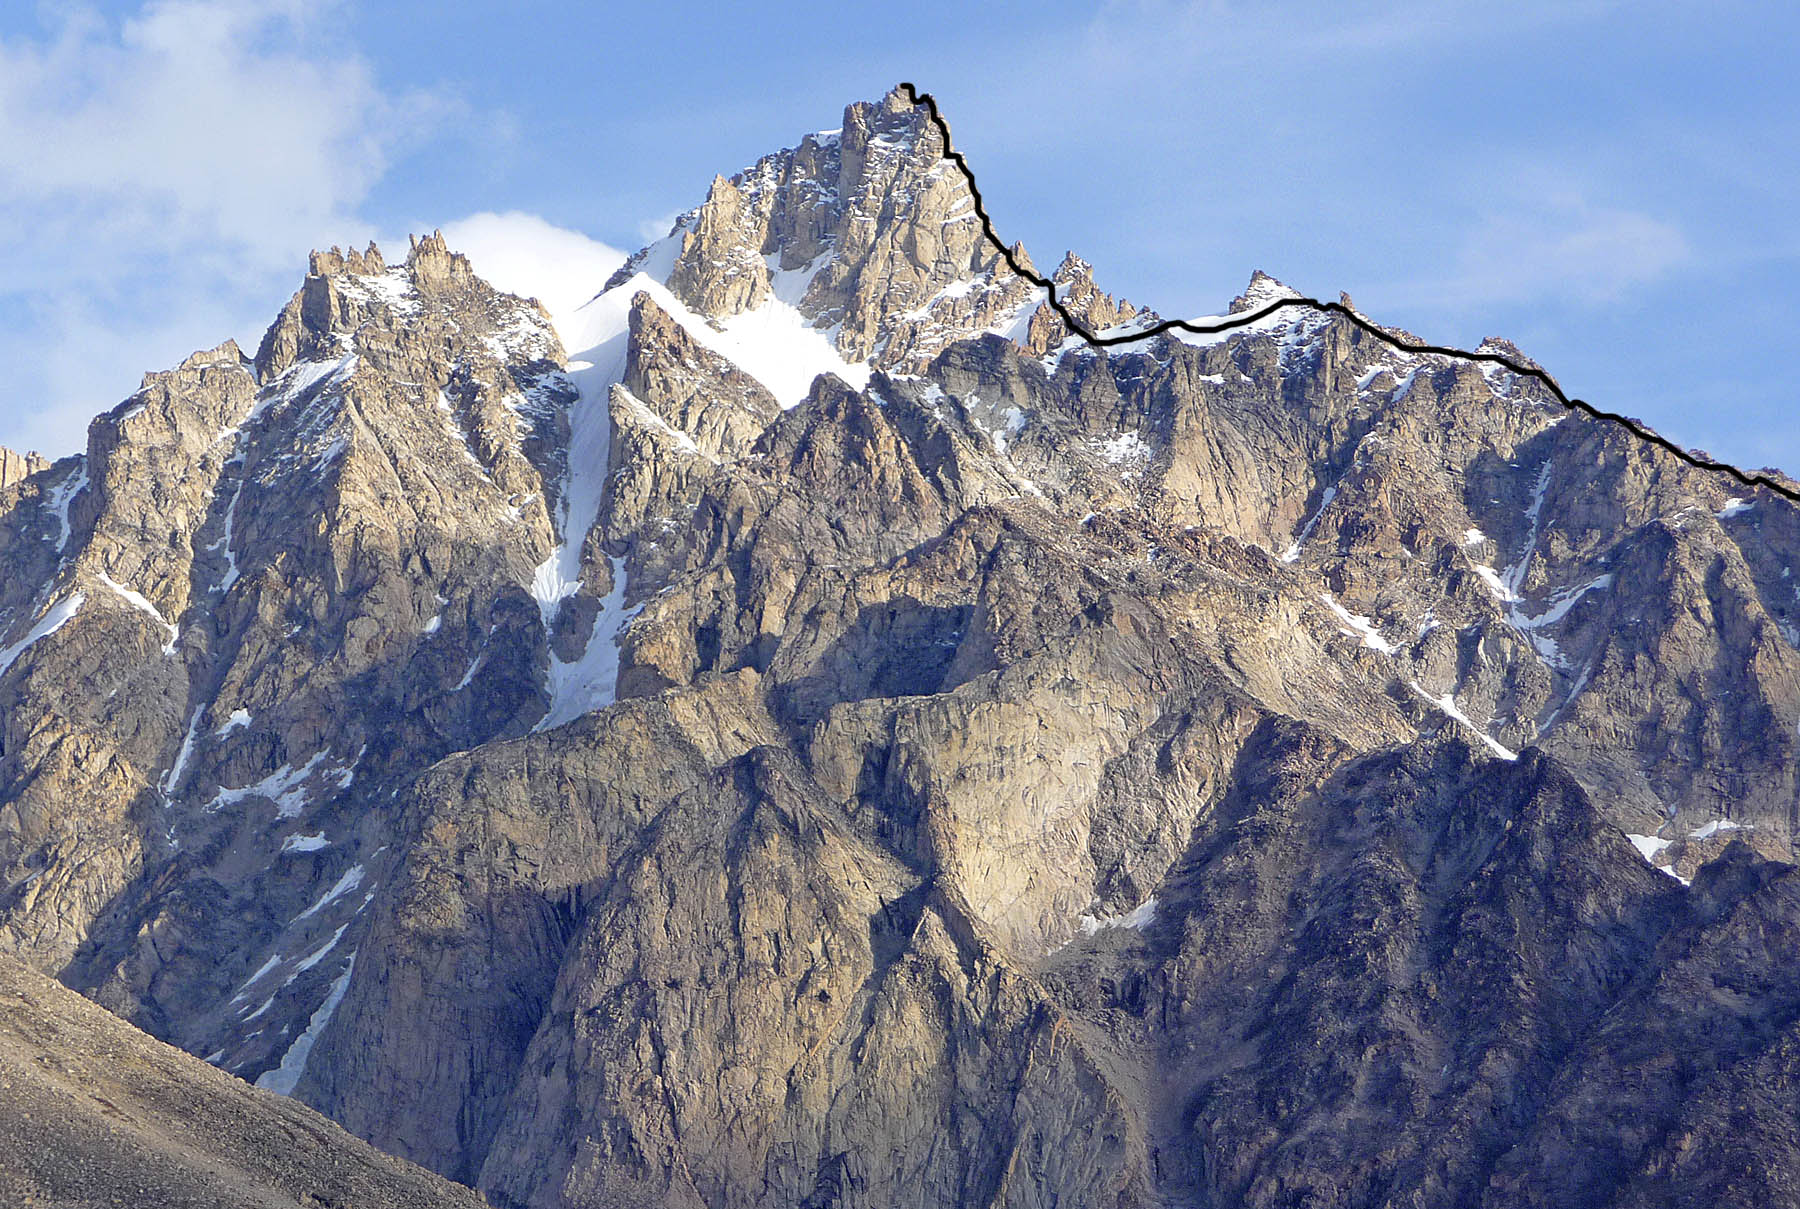 McDonnell Peak, showing the line of the first ascent. The final pitch was the crux.